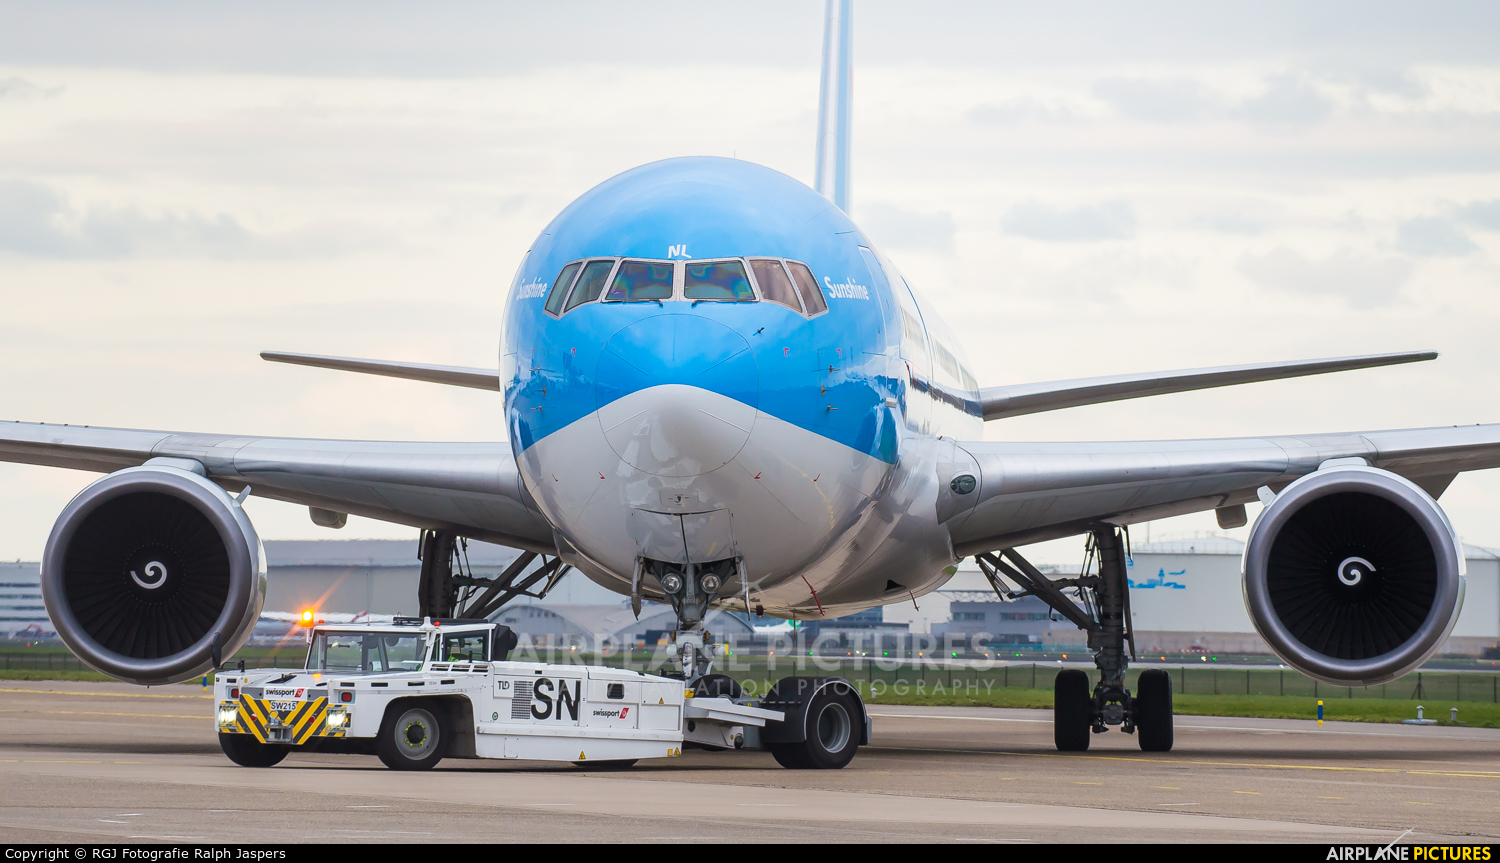 TUI Airlines Belgium OO-JNL aircraft at Amsterdam - Schiphol